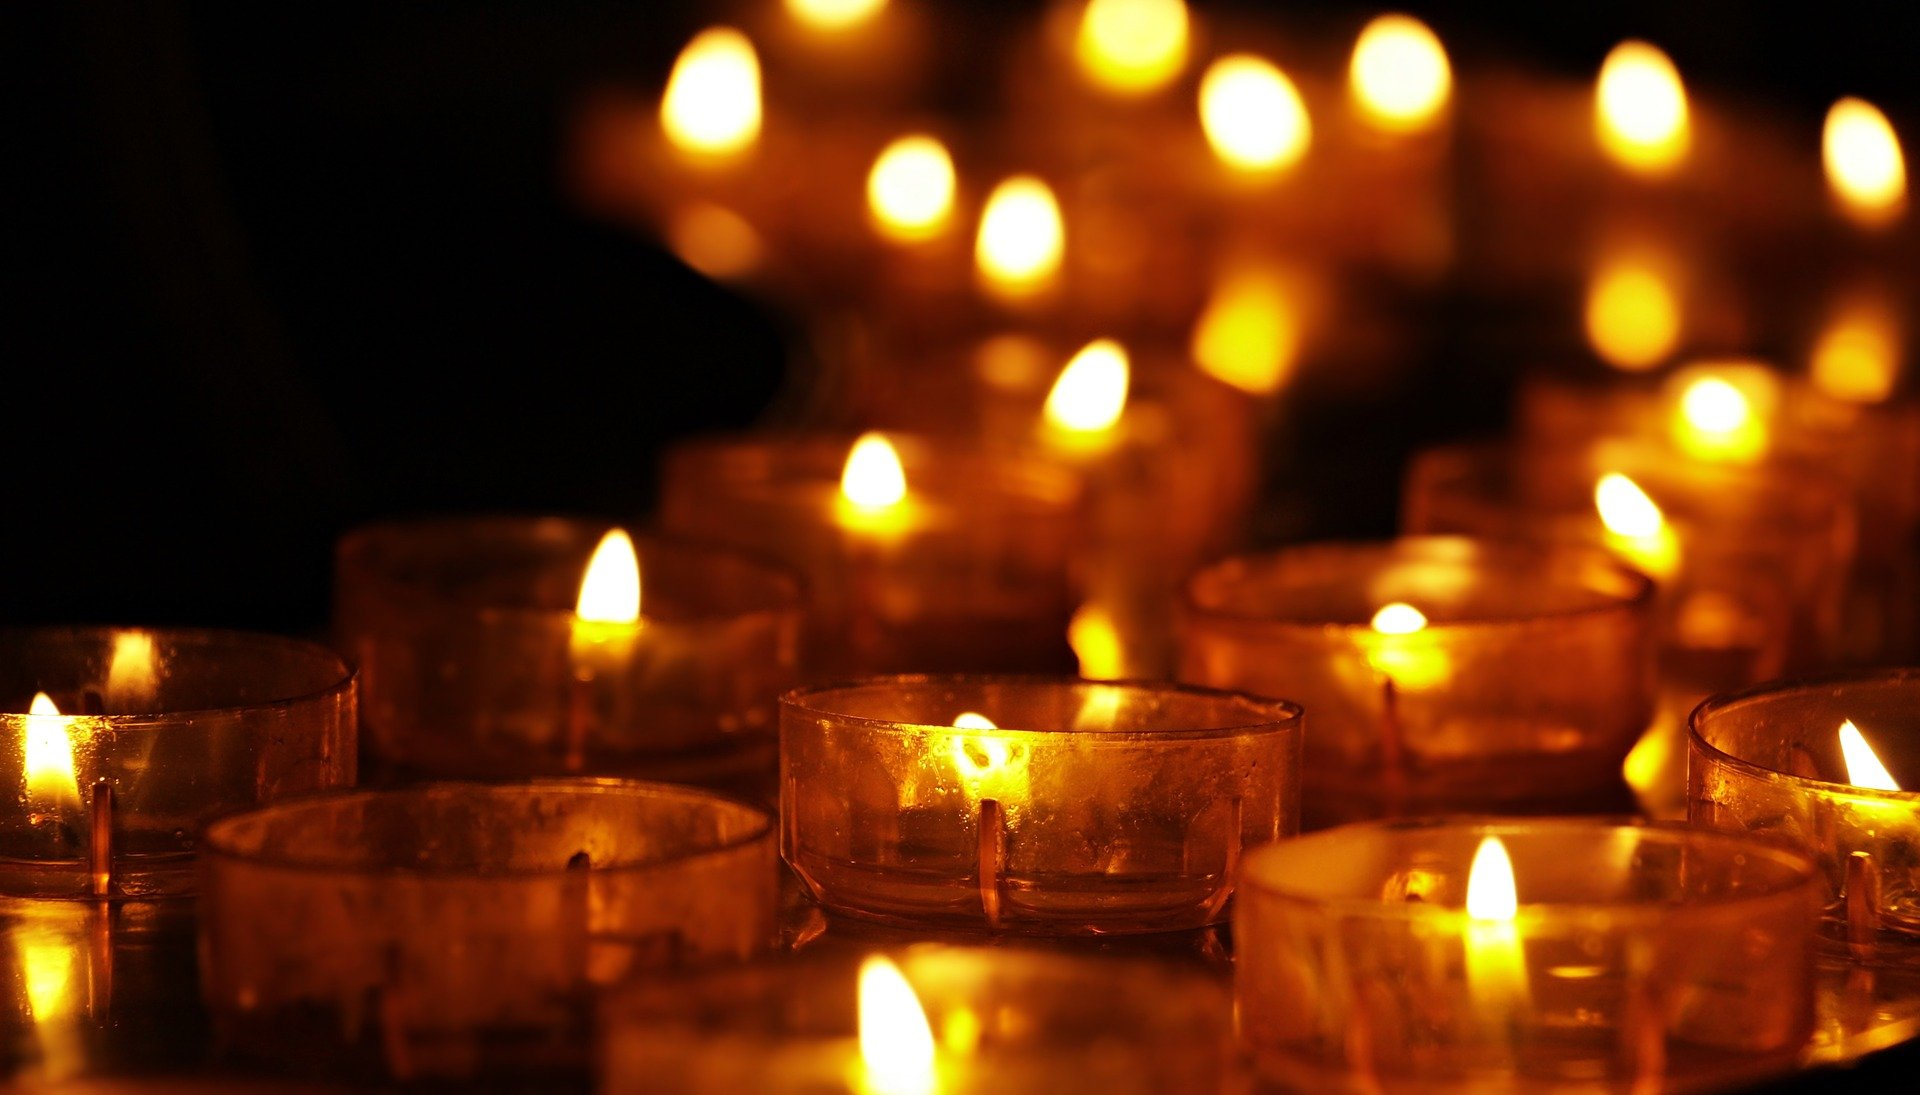 tea-lights-3612508_1920.jpg